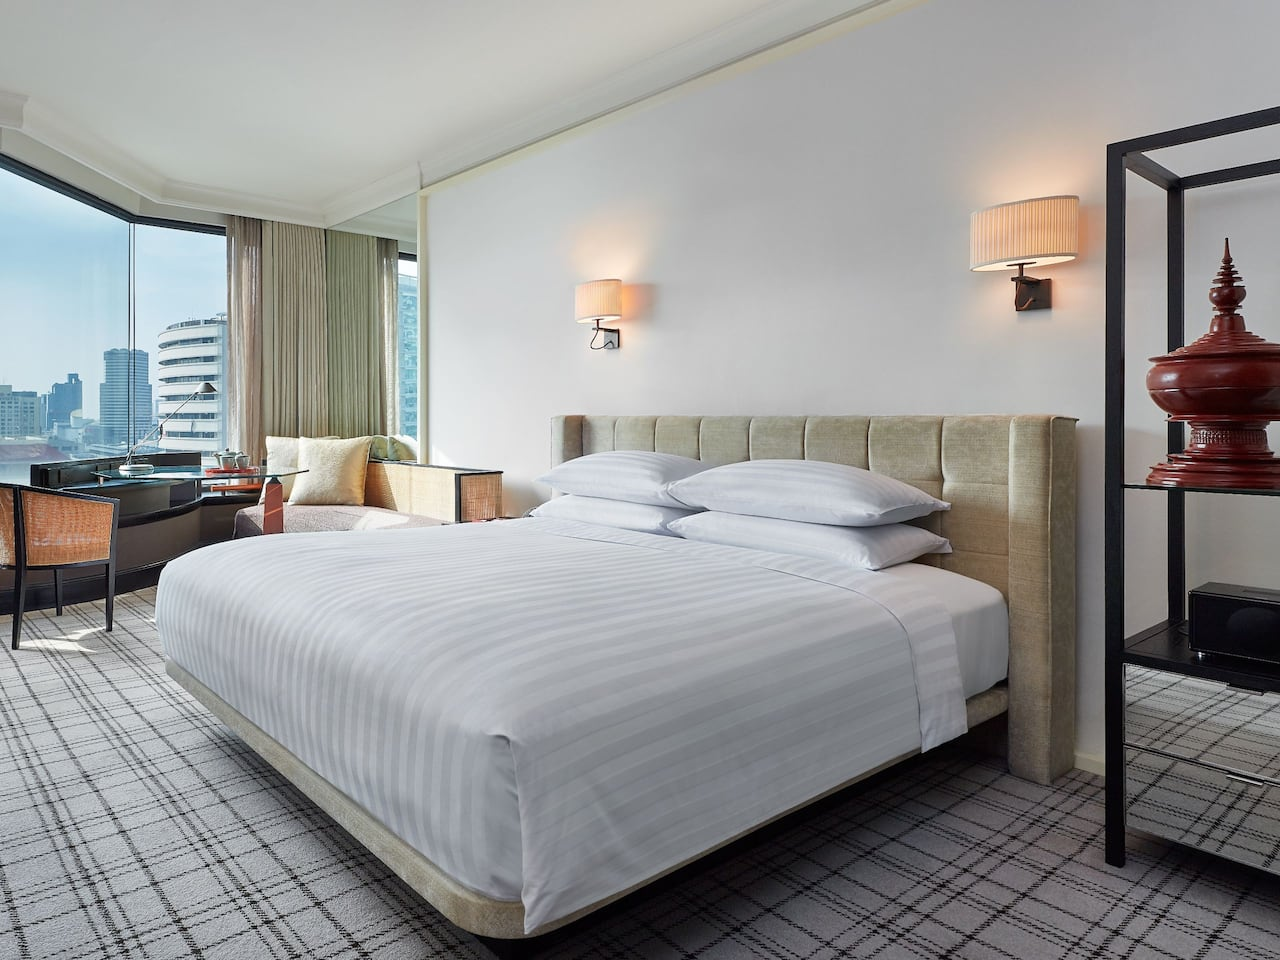 1 King Bed View Club Access - Grand Hyatt Erawan Bangkok